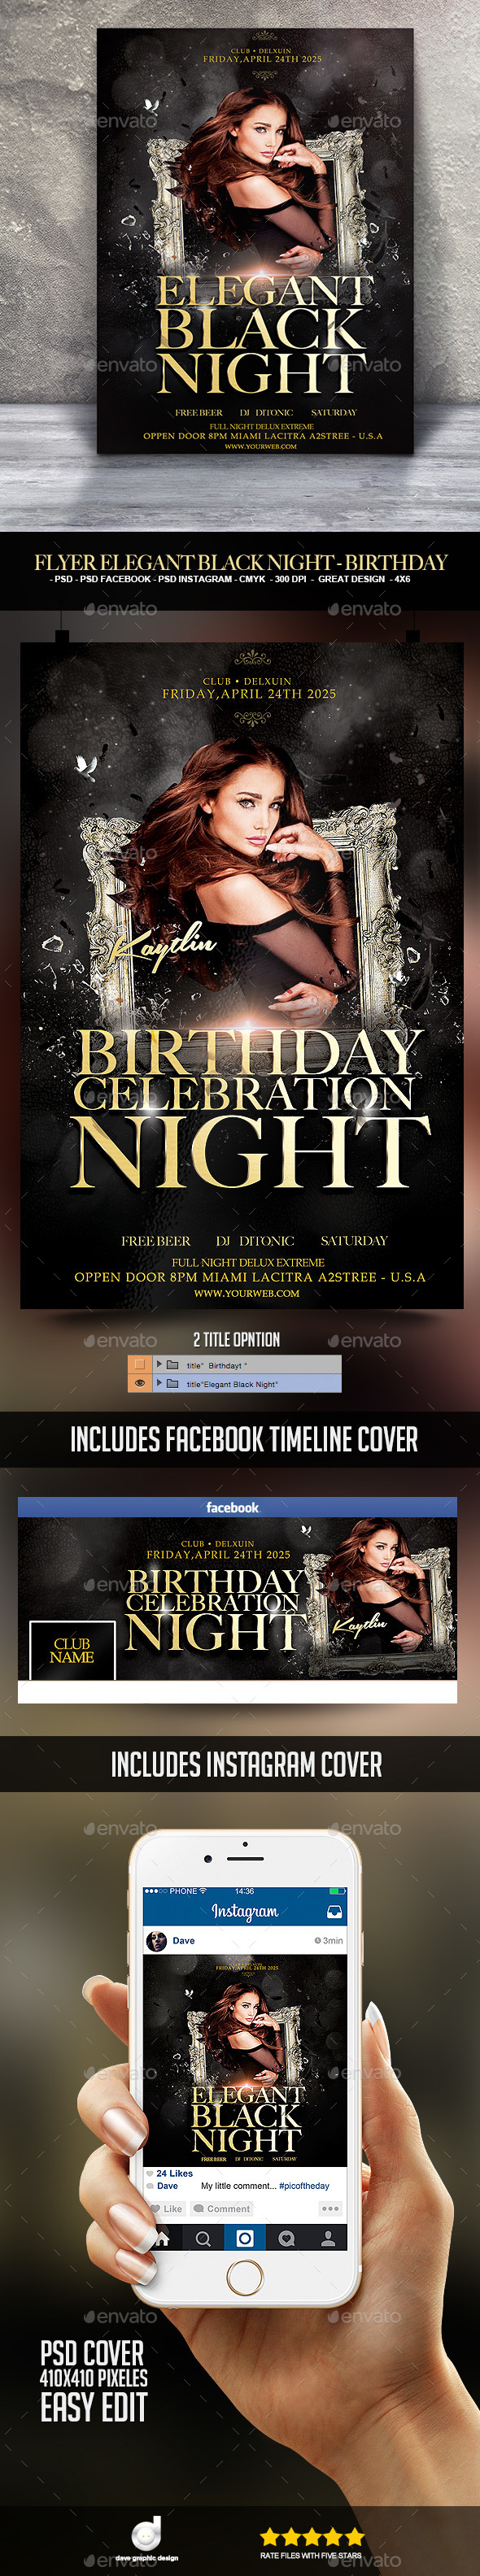 Flyer Elegant Black Night - Birthday - Clubs & Parties Events